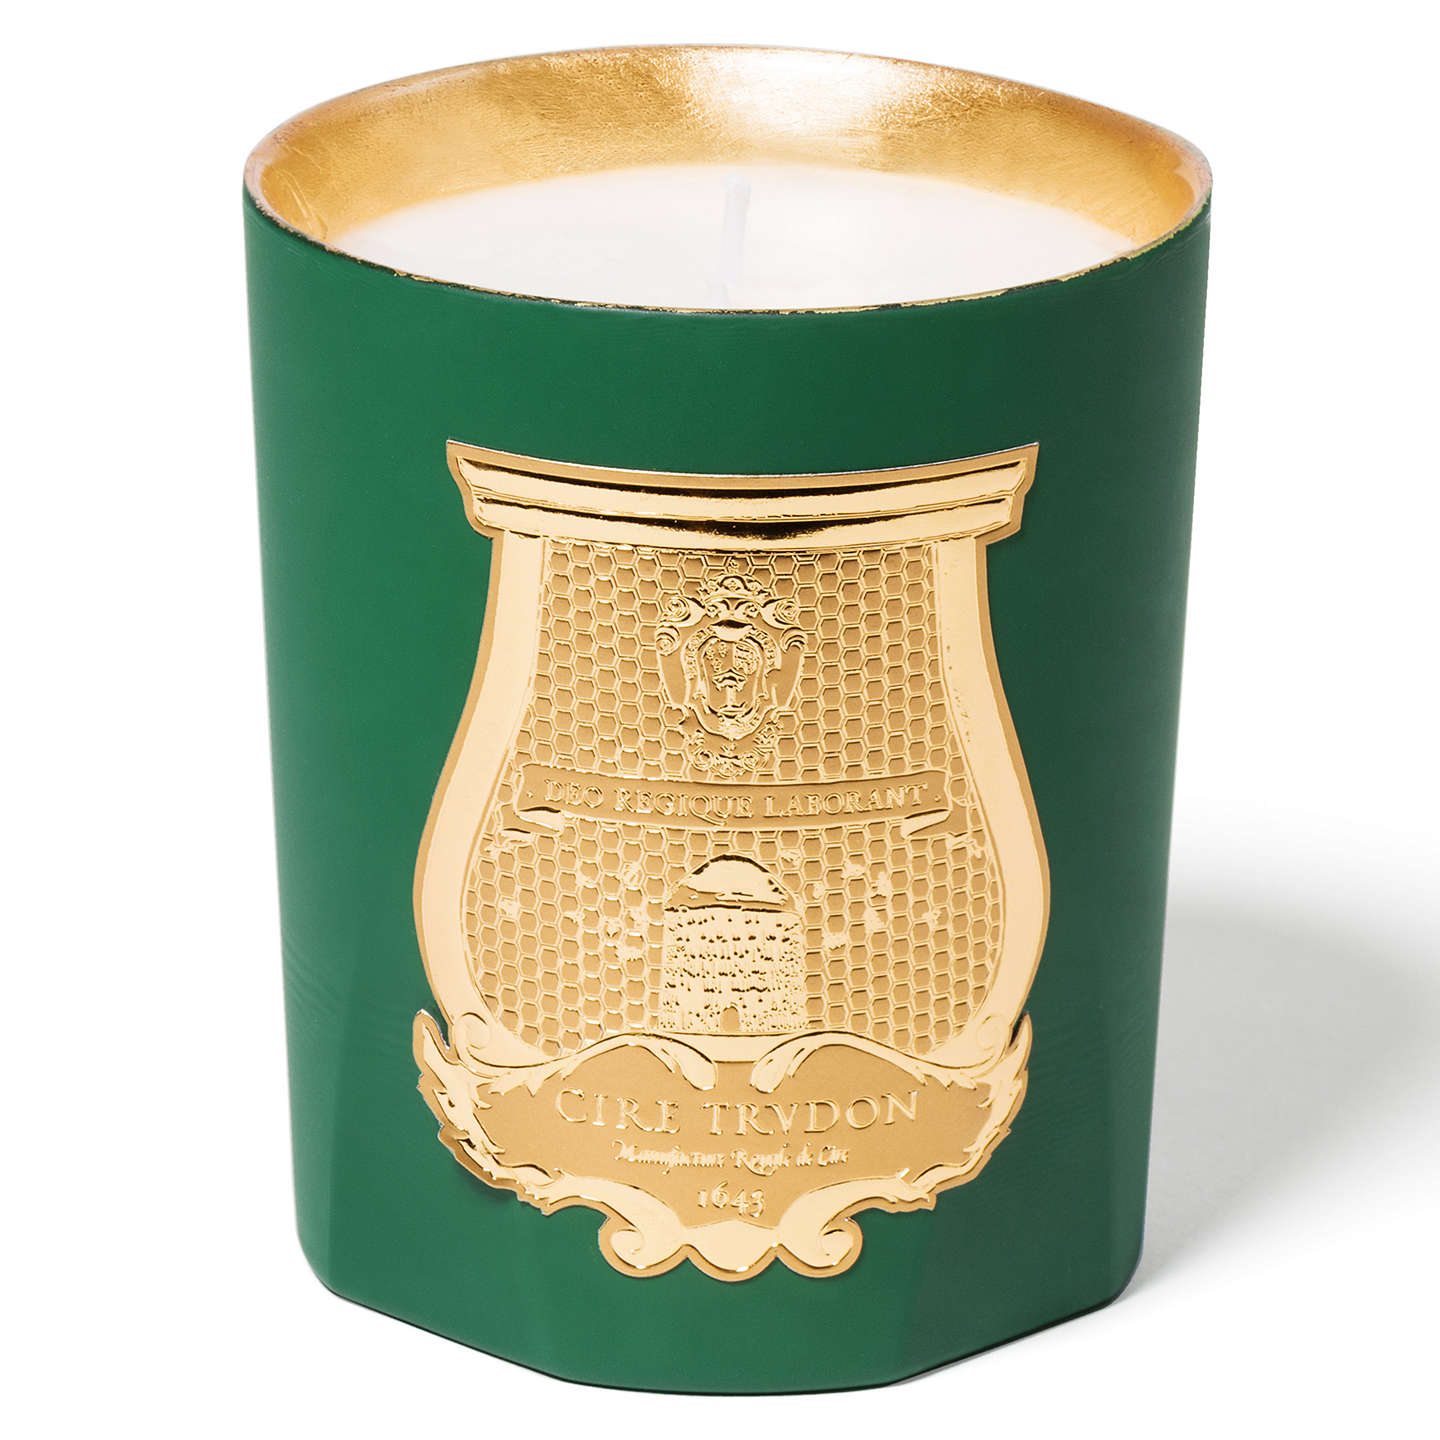 BuyCire Trudon Ciel Scented Candle Online at johnlewis.com